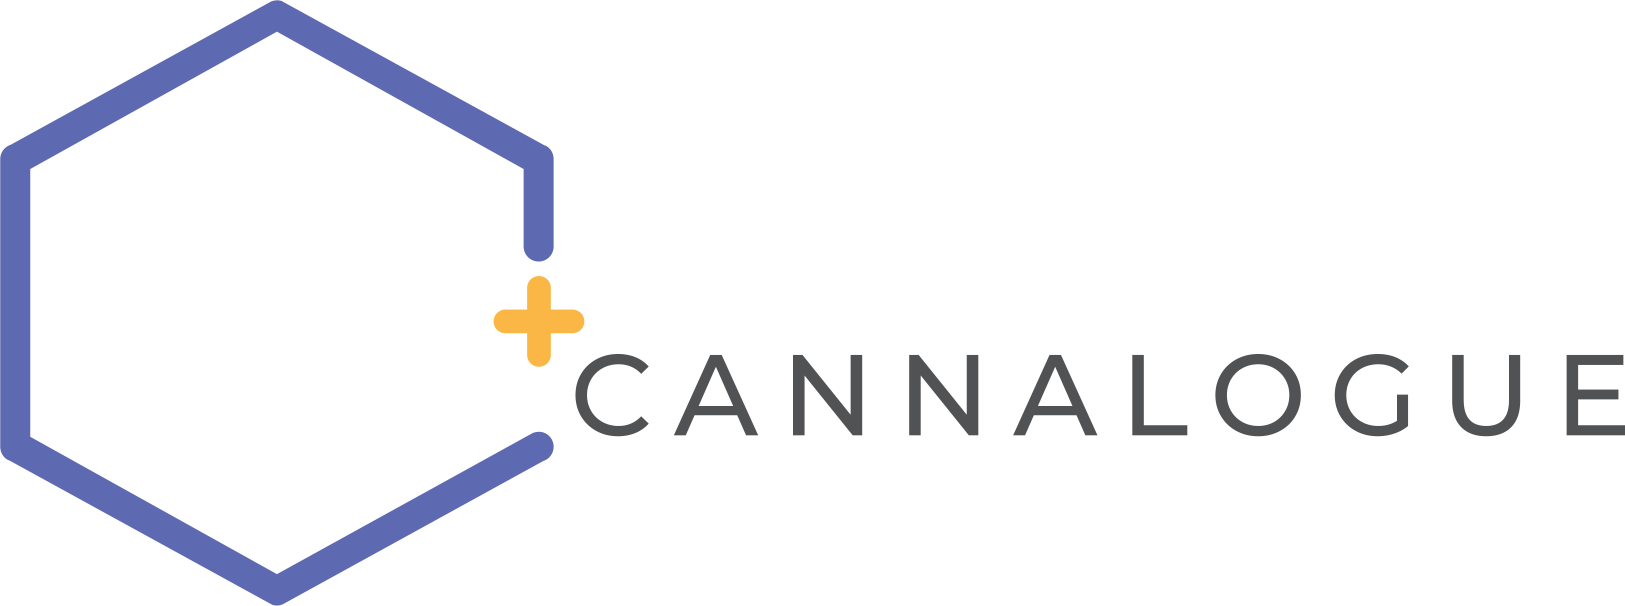 Cannalogue Introduces COVID-19 Compassionate Care Program For Medical Cannabis